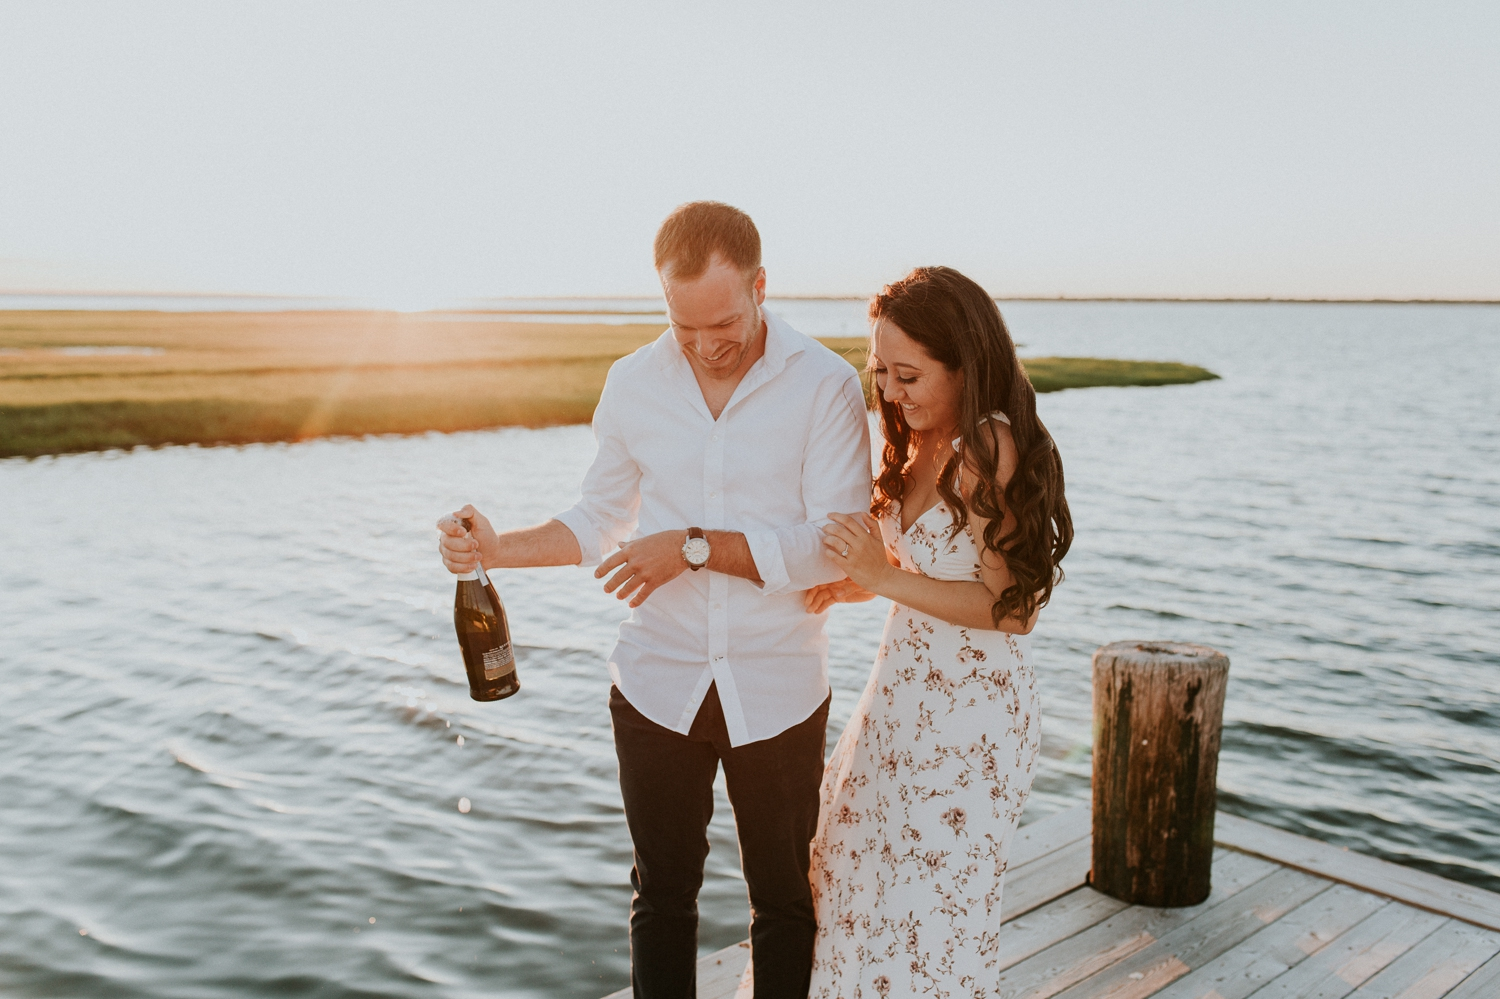 ho-hum-beach-boat-ride-engagement-photography-bellport-new-york 31.jpg